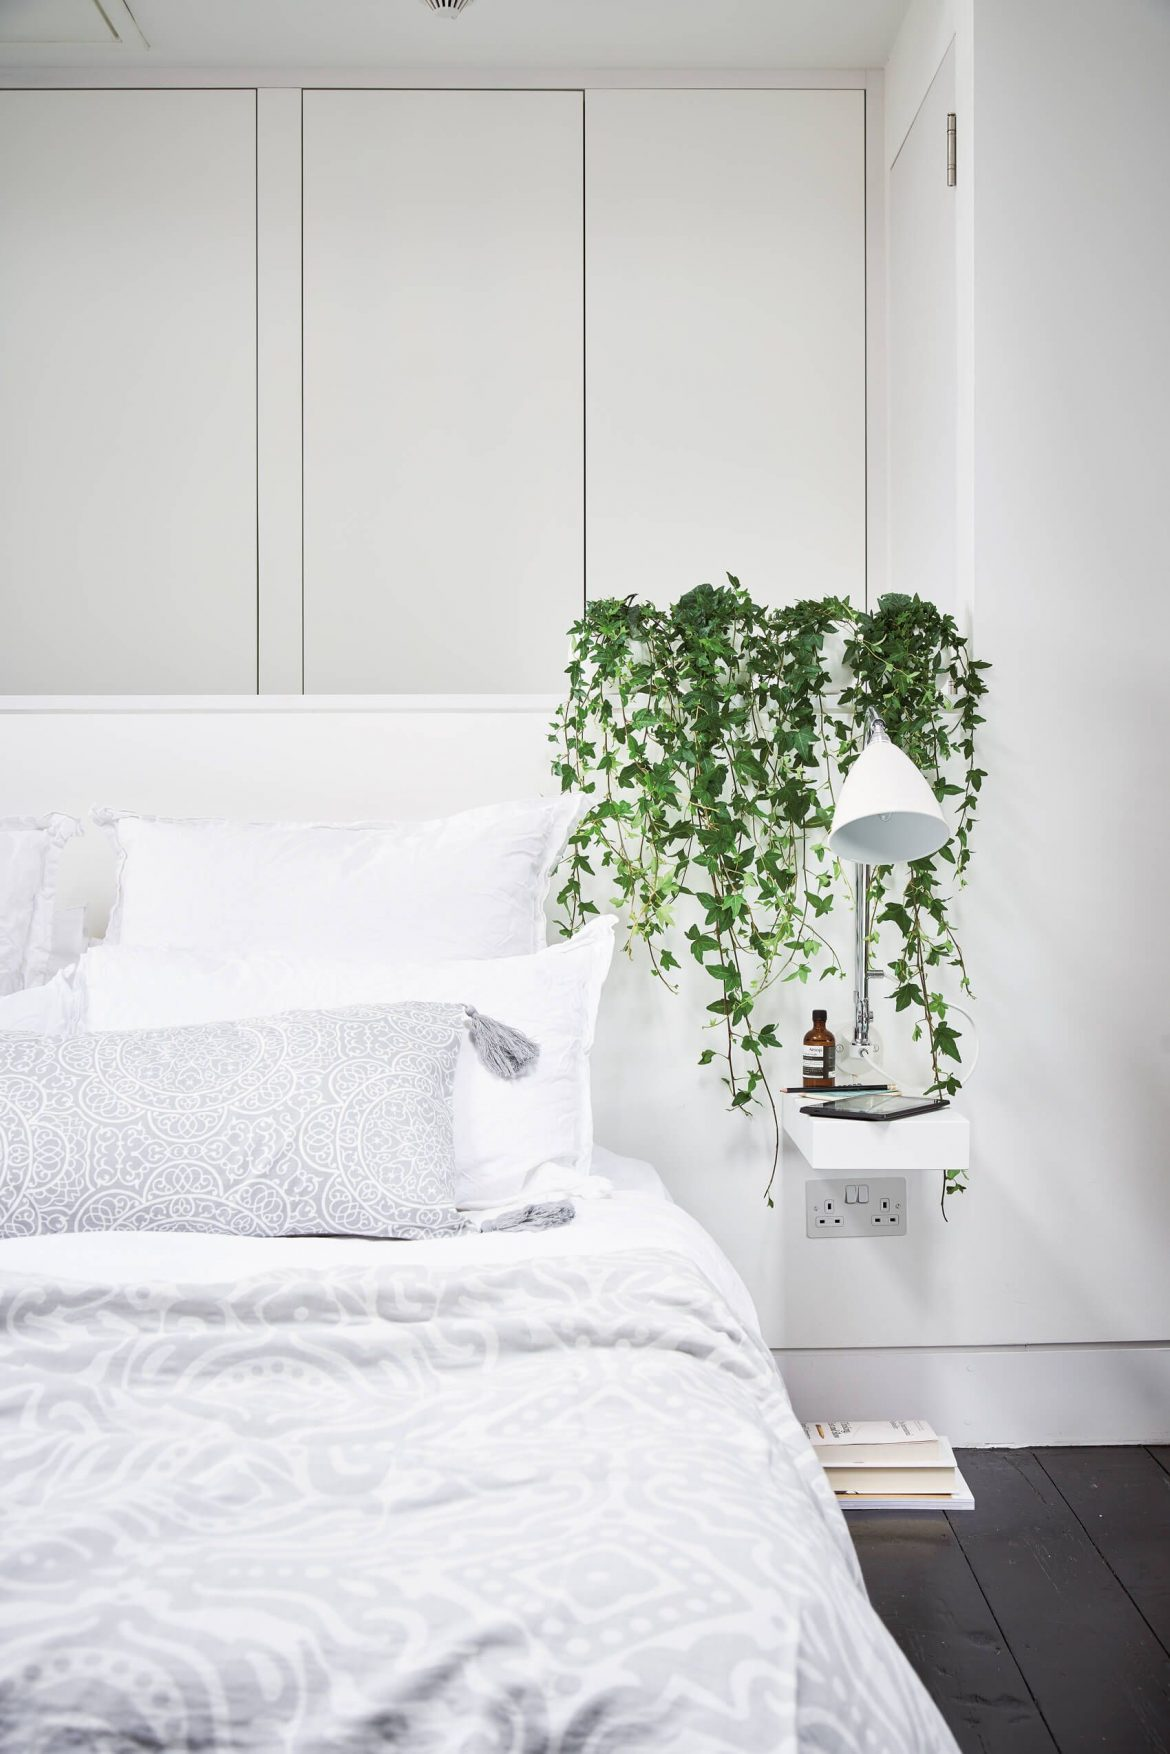 These Are The Best Bedroom Plants to Help You Get a Better Sleep 2